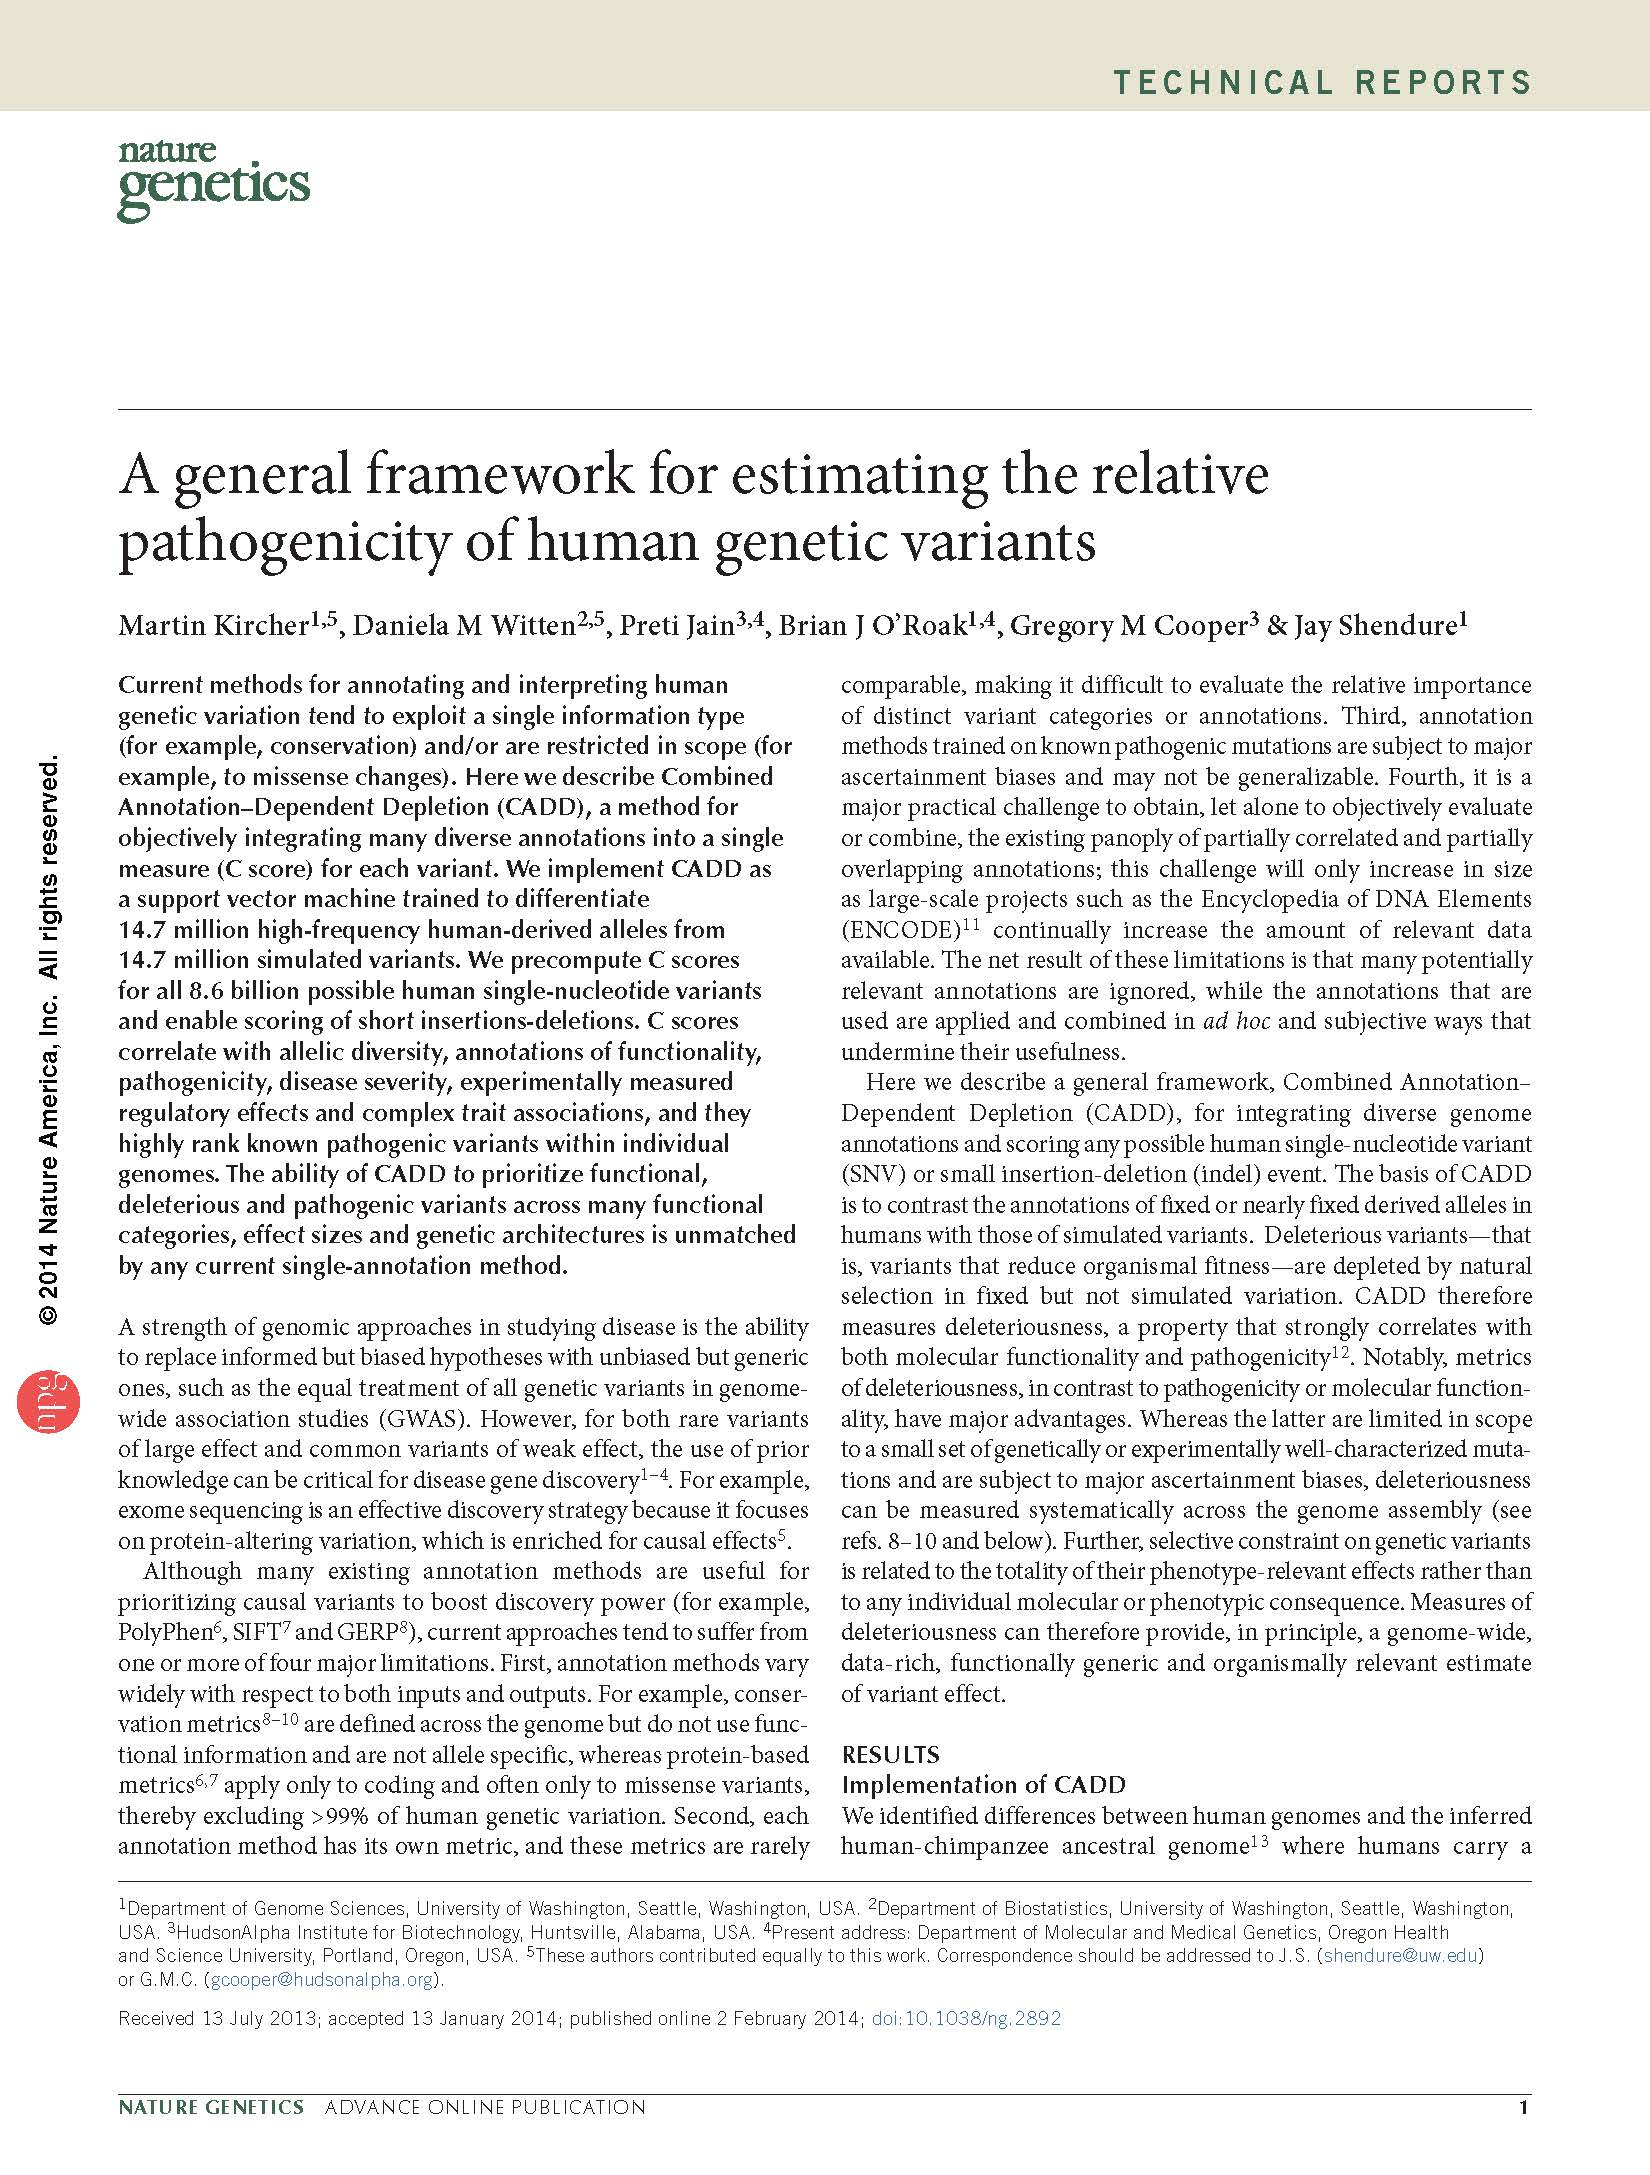 Research paper on genetics